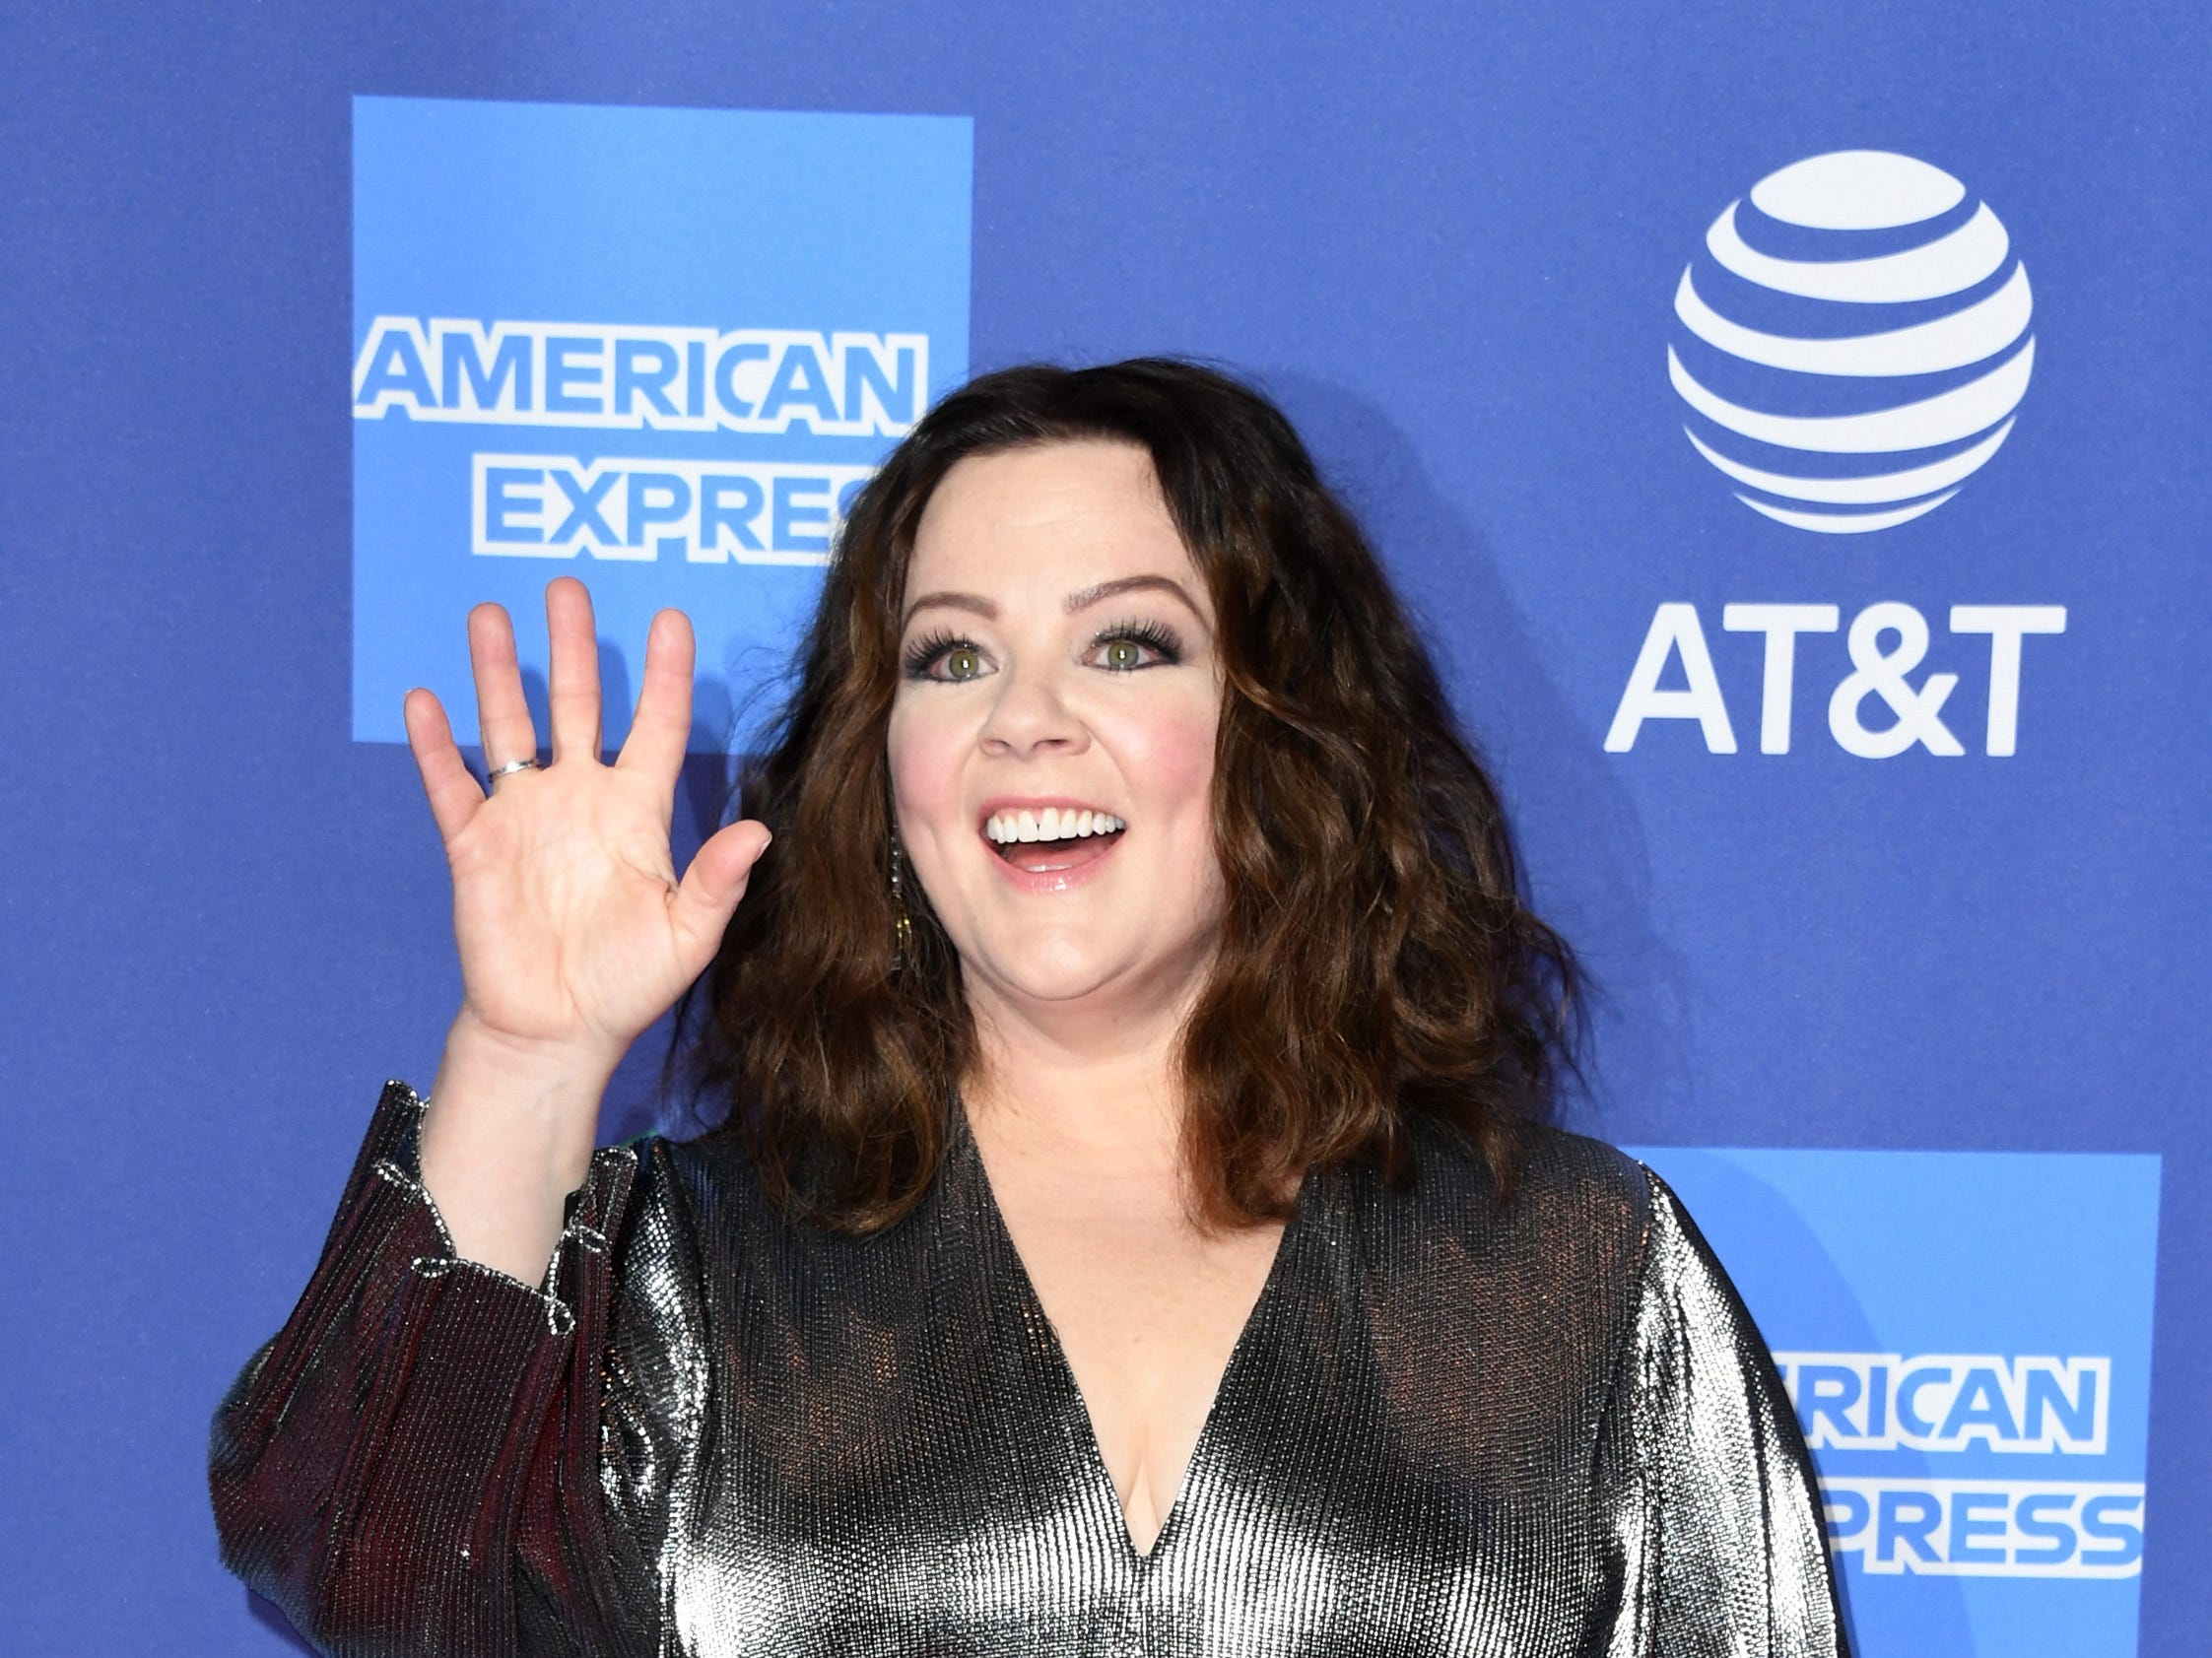 PALM SPRINGS, CA - JANUARY 03:  Melissa McCarthy attends the 30th Annual Palm Springs International Film Festival Film Awards Gala at Palm Springs Convention Center on January 3, 2019 in Palm Springs, California.  (Photo by Jon Kopaloff/Getty Images) ORG XMIT: 775256270 ORIG FILE ID: 1076919886